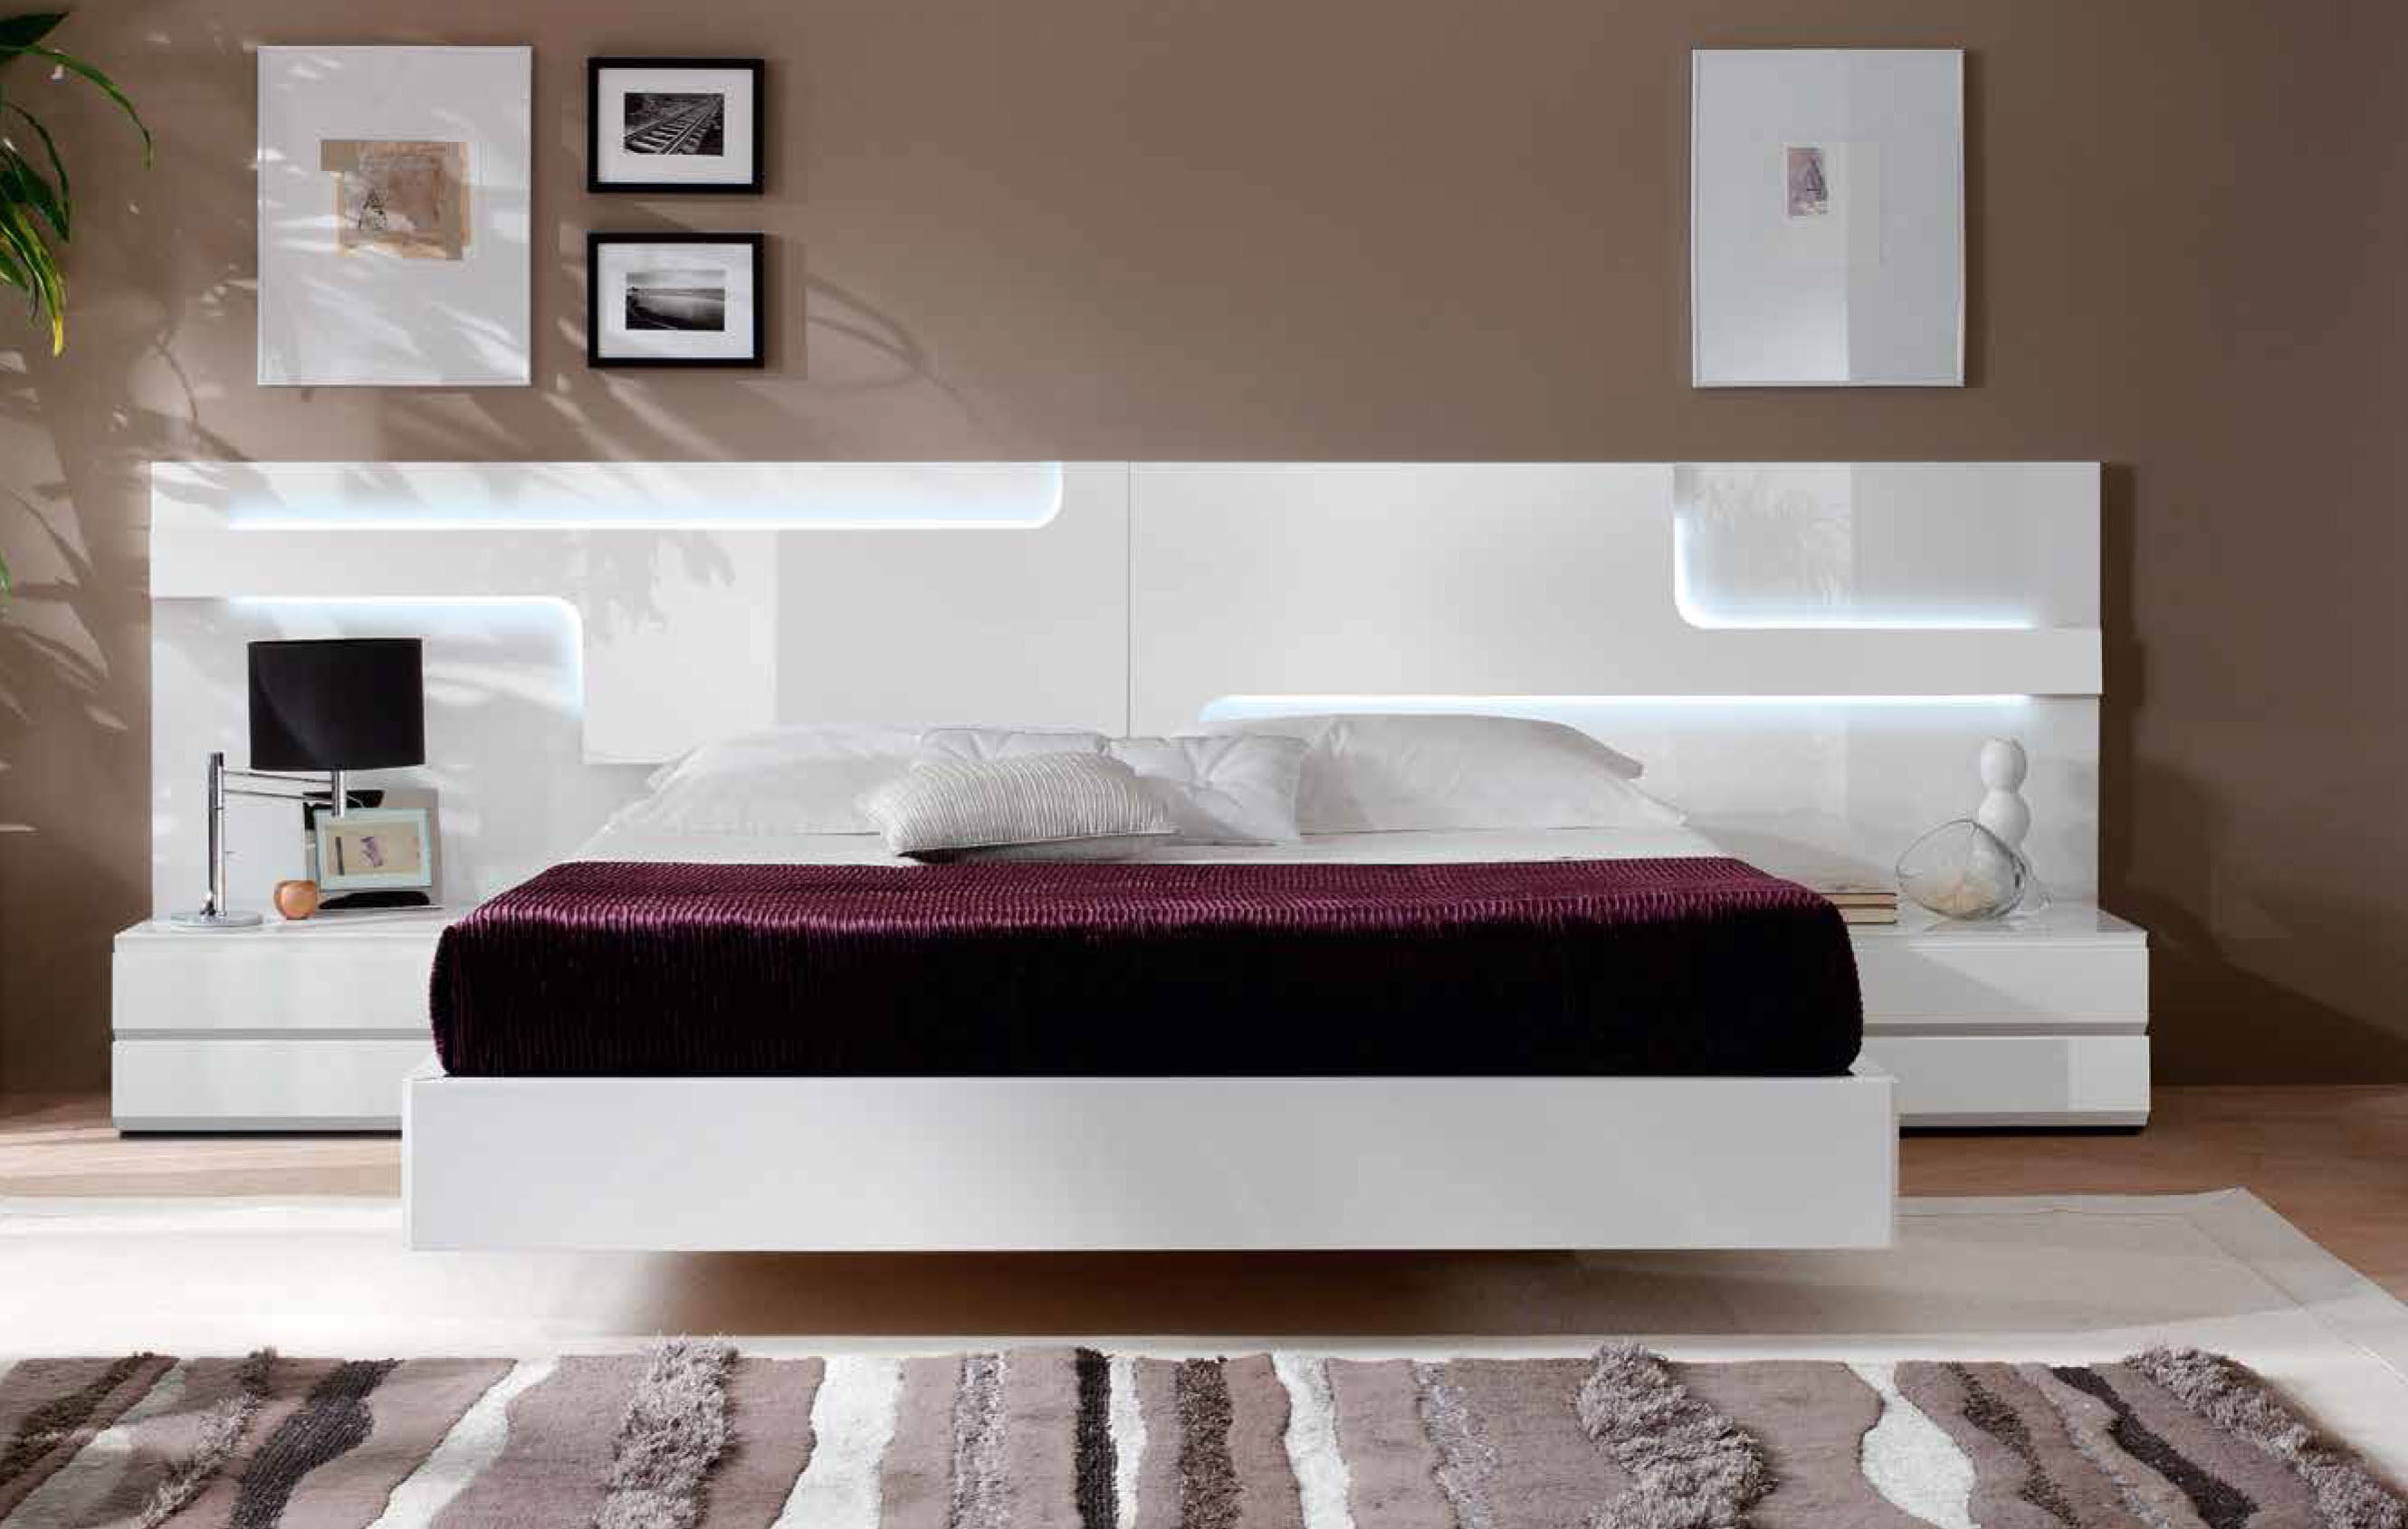 Gentil White Floating Bed And Nighstands Used As Modern Bedroom Furniture In  Spacious Room With Wide Carpet